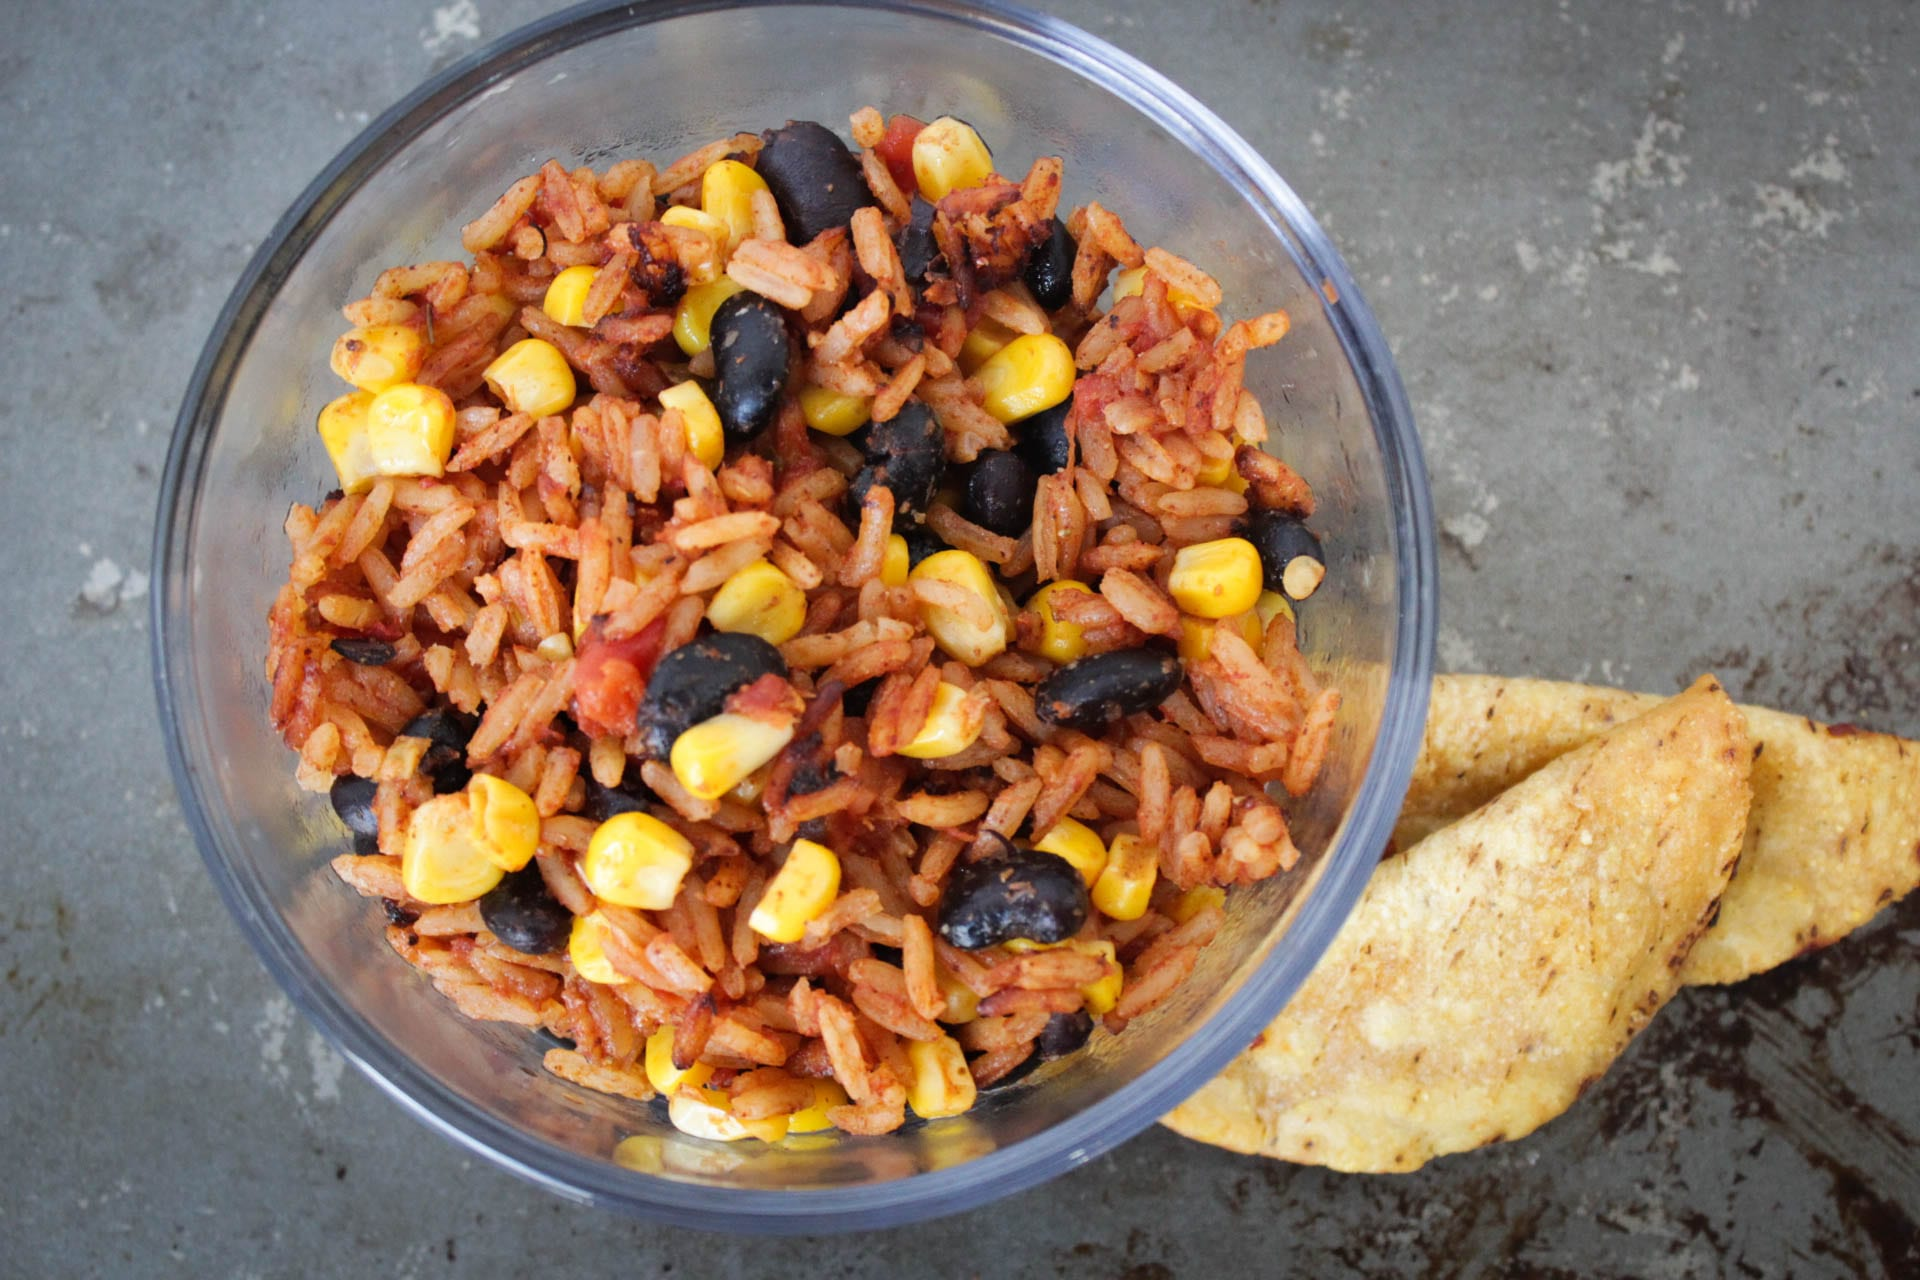 Homemade spanish rice with a blend of flavorful seasonings, corn, tomatoes, diced green chiles and black beans. Serve with your favorite Mexican dishes